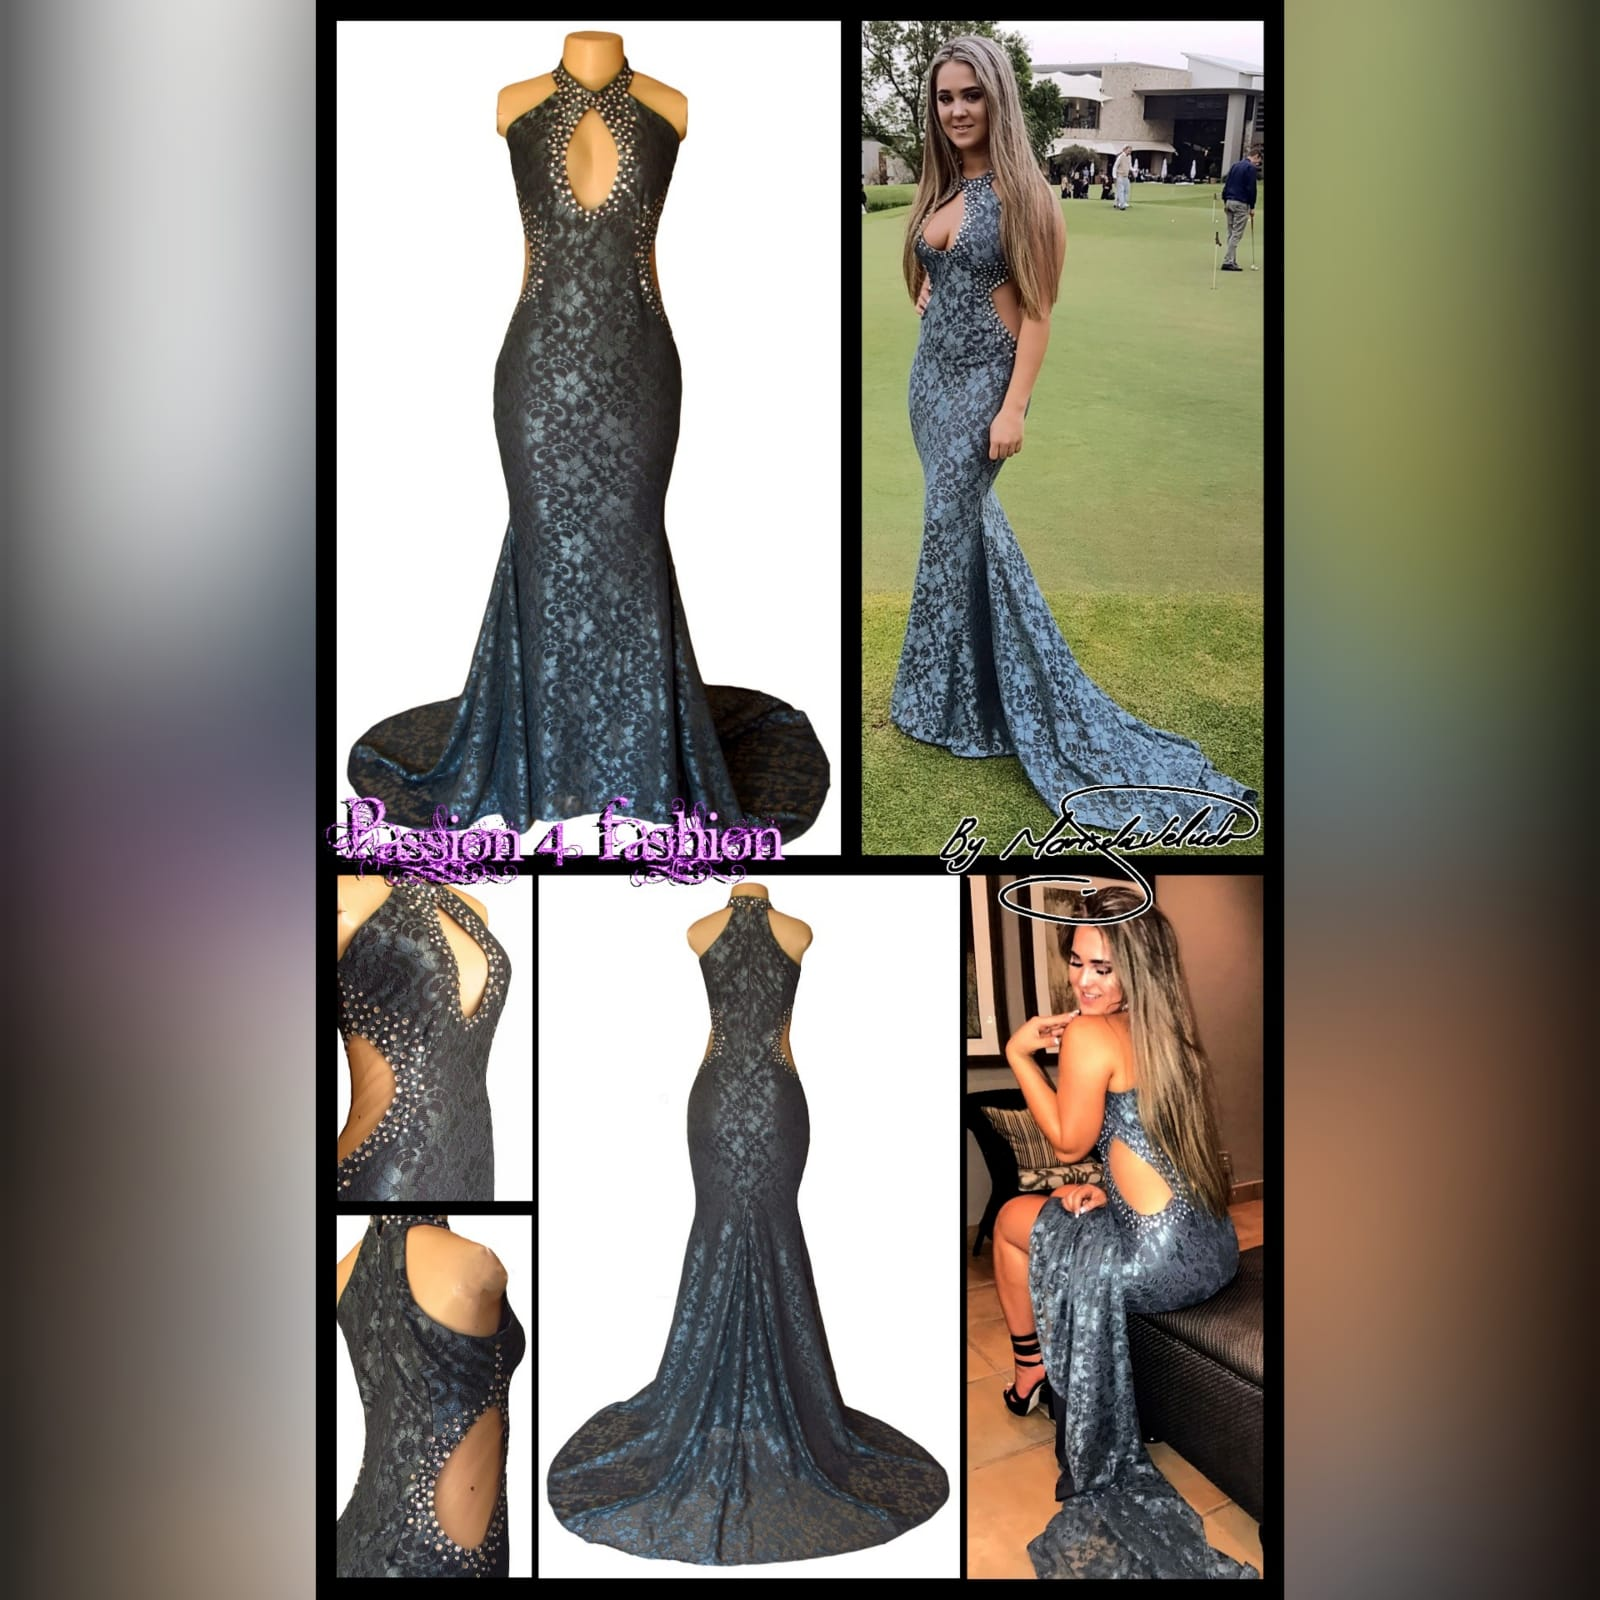 Choker gray fully laced long prom dress 2 gray fully laced long prom dress with a choker neckline and a cleavage opening and side tummy openings with a train. Detailed with silver beads.